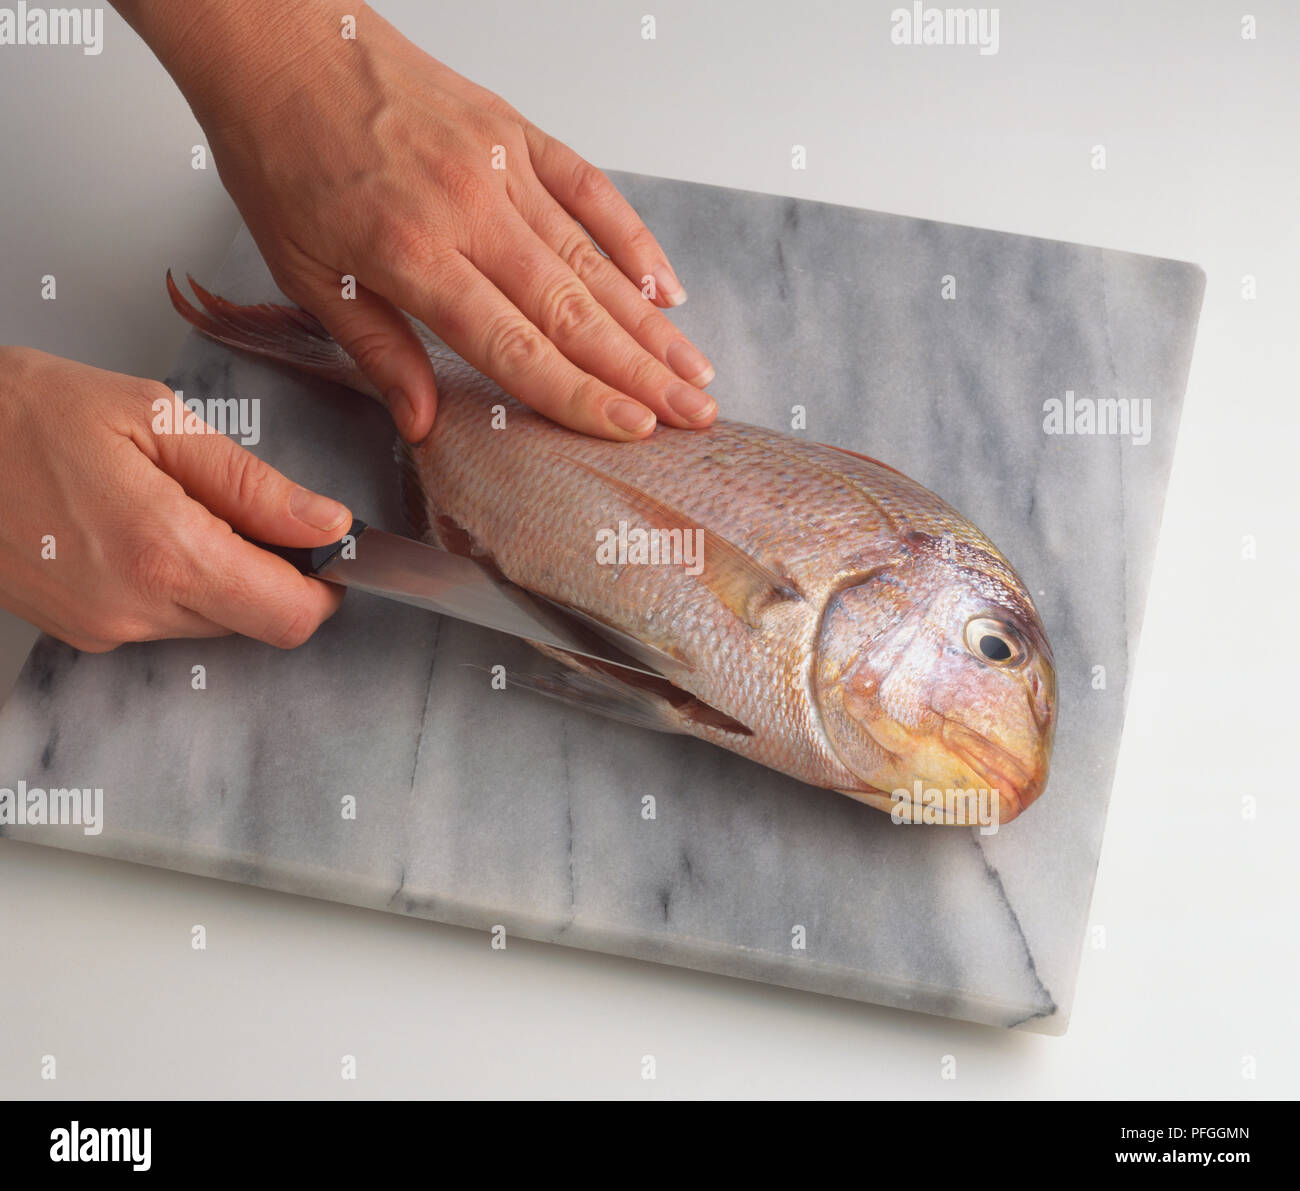 Using knife to slit belly of uncooked Sea Bass (Serranidae), high angle view. - Stock Image